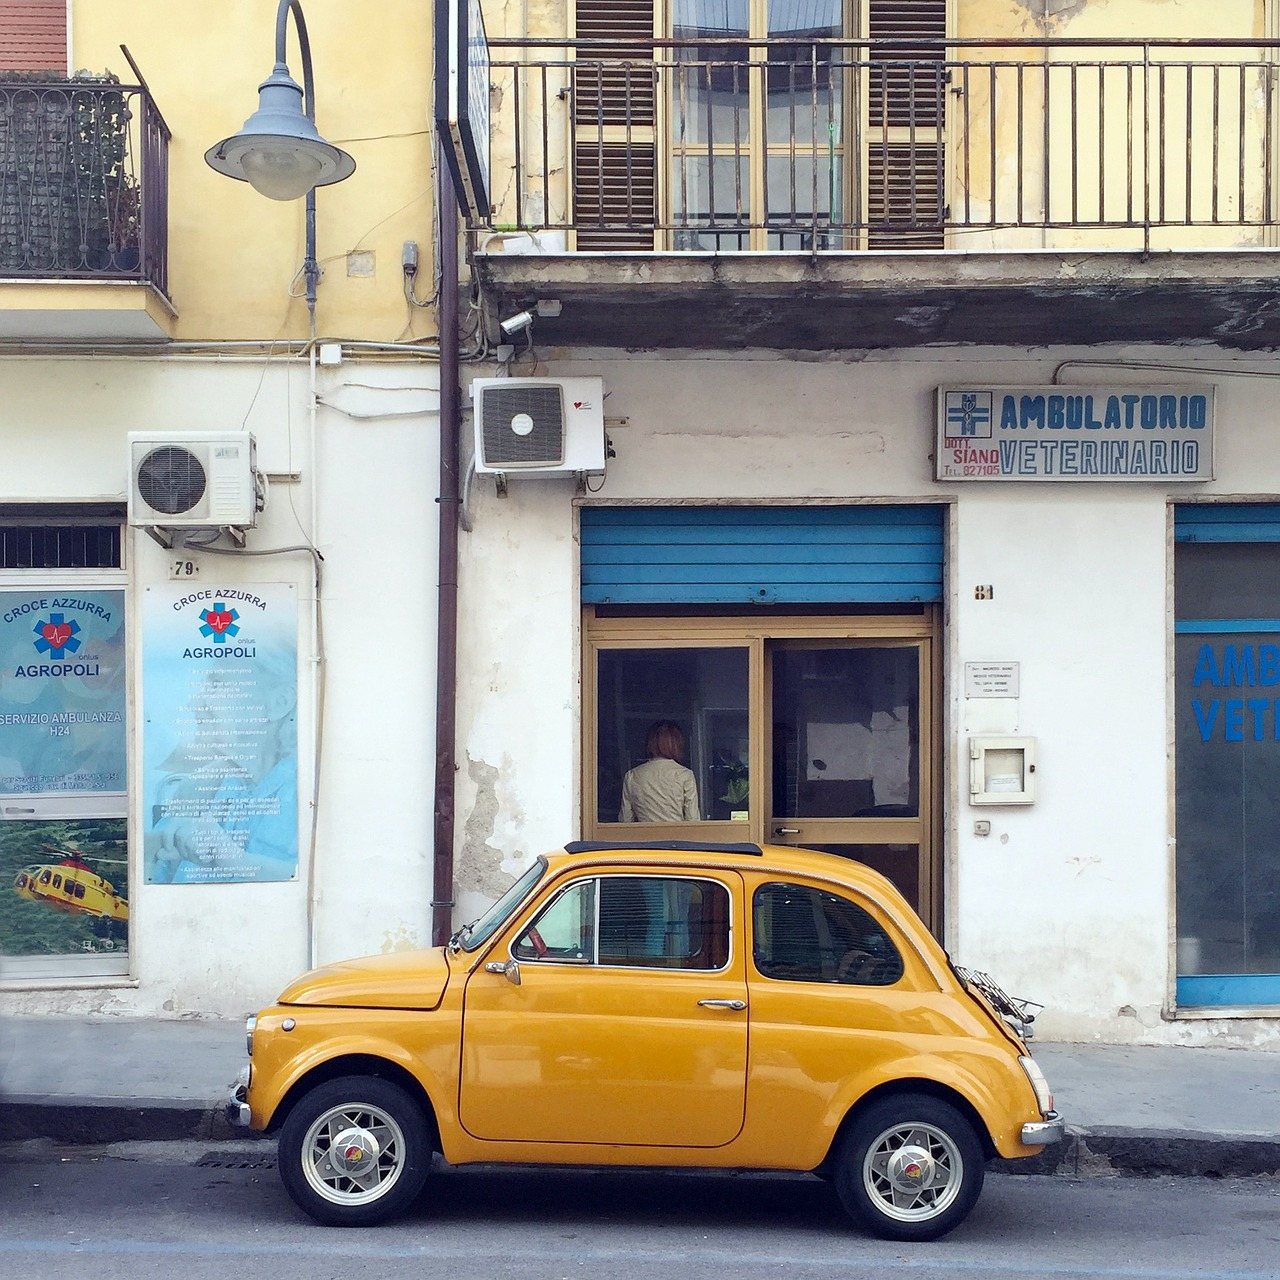 Fiat 500, the really small car